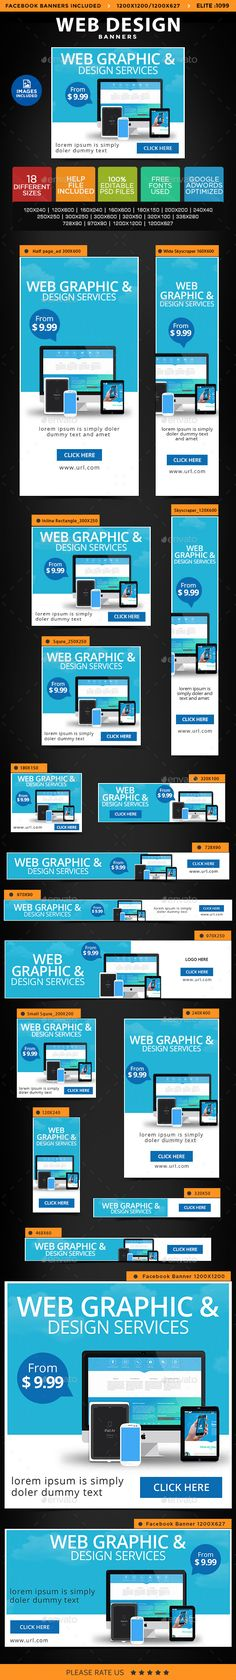 Web Design Banners — Photoshop PSD #flat design #coupon • Available here → https://graphicriver.net/item/web-design-banners/14621802?ref=pxcr